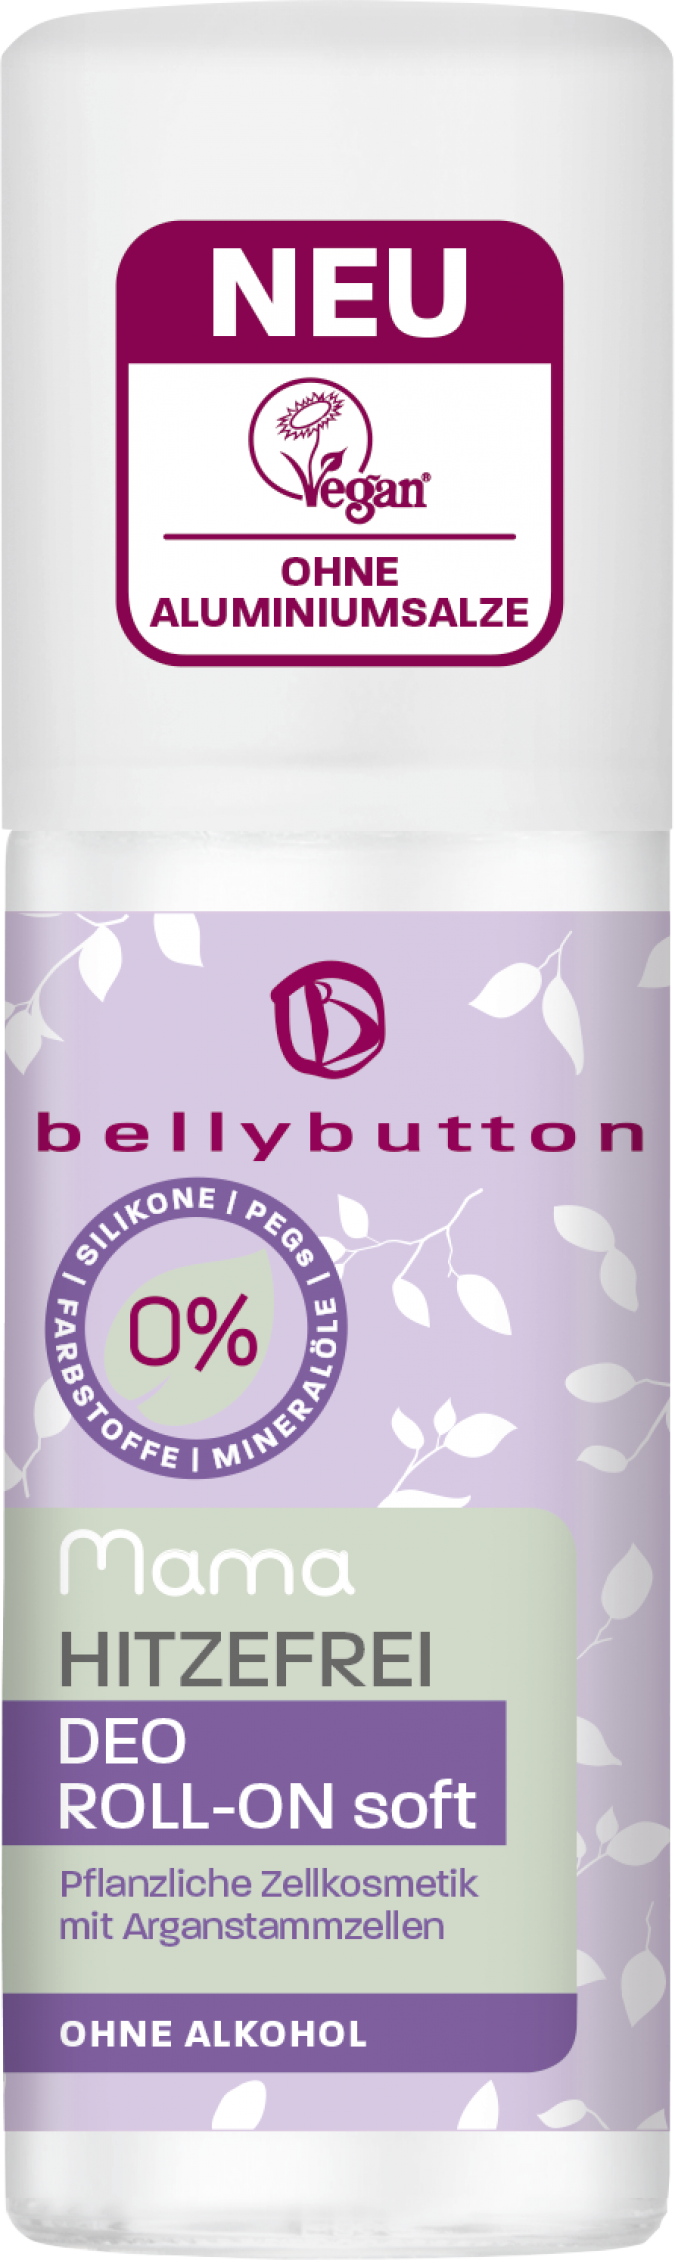 Packshot_bellybutton_Mama_Deo_RollOn_110716_300dpi